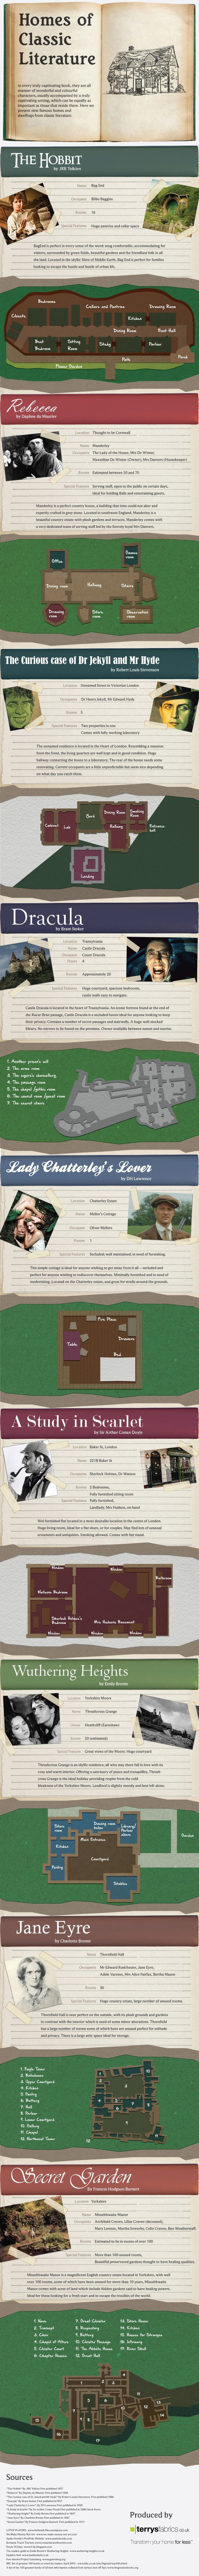 Infographic: Homes of Classic Literature.